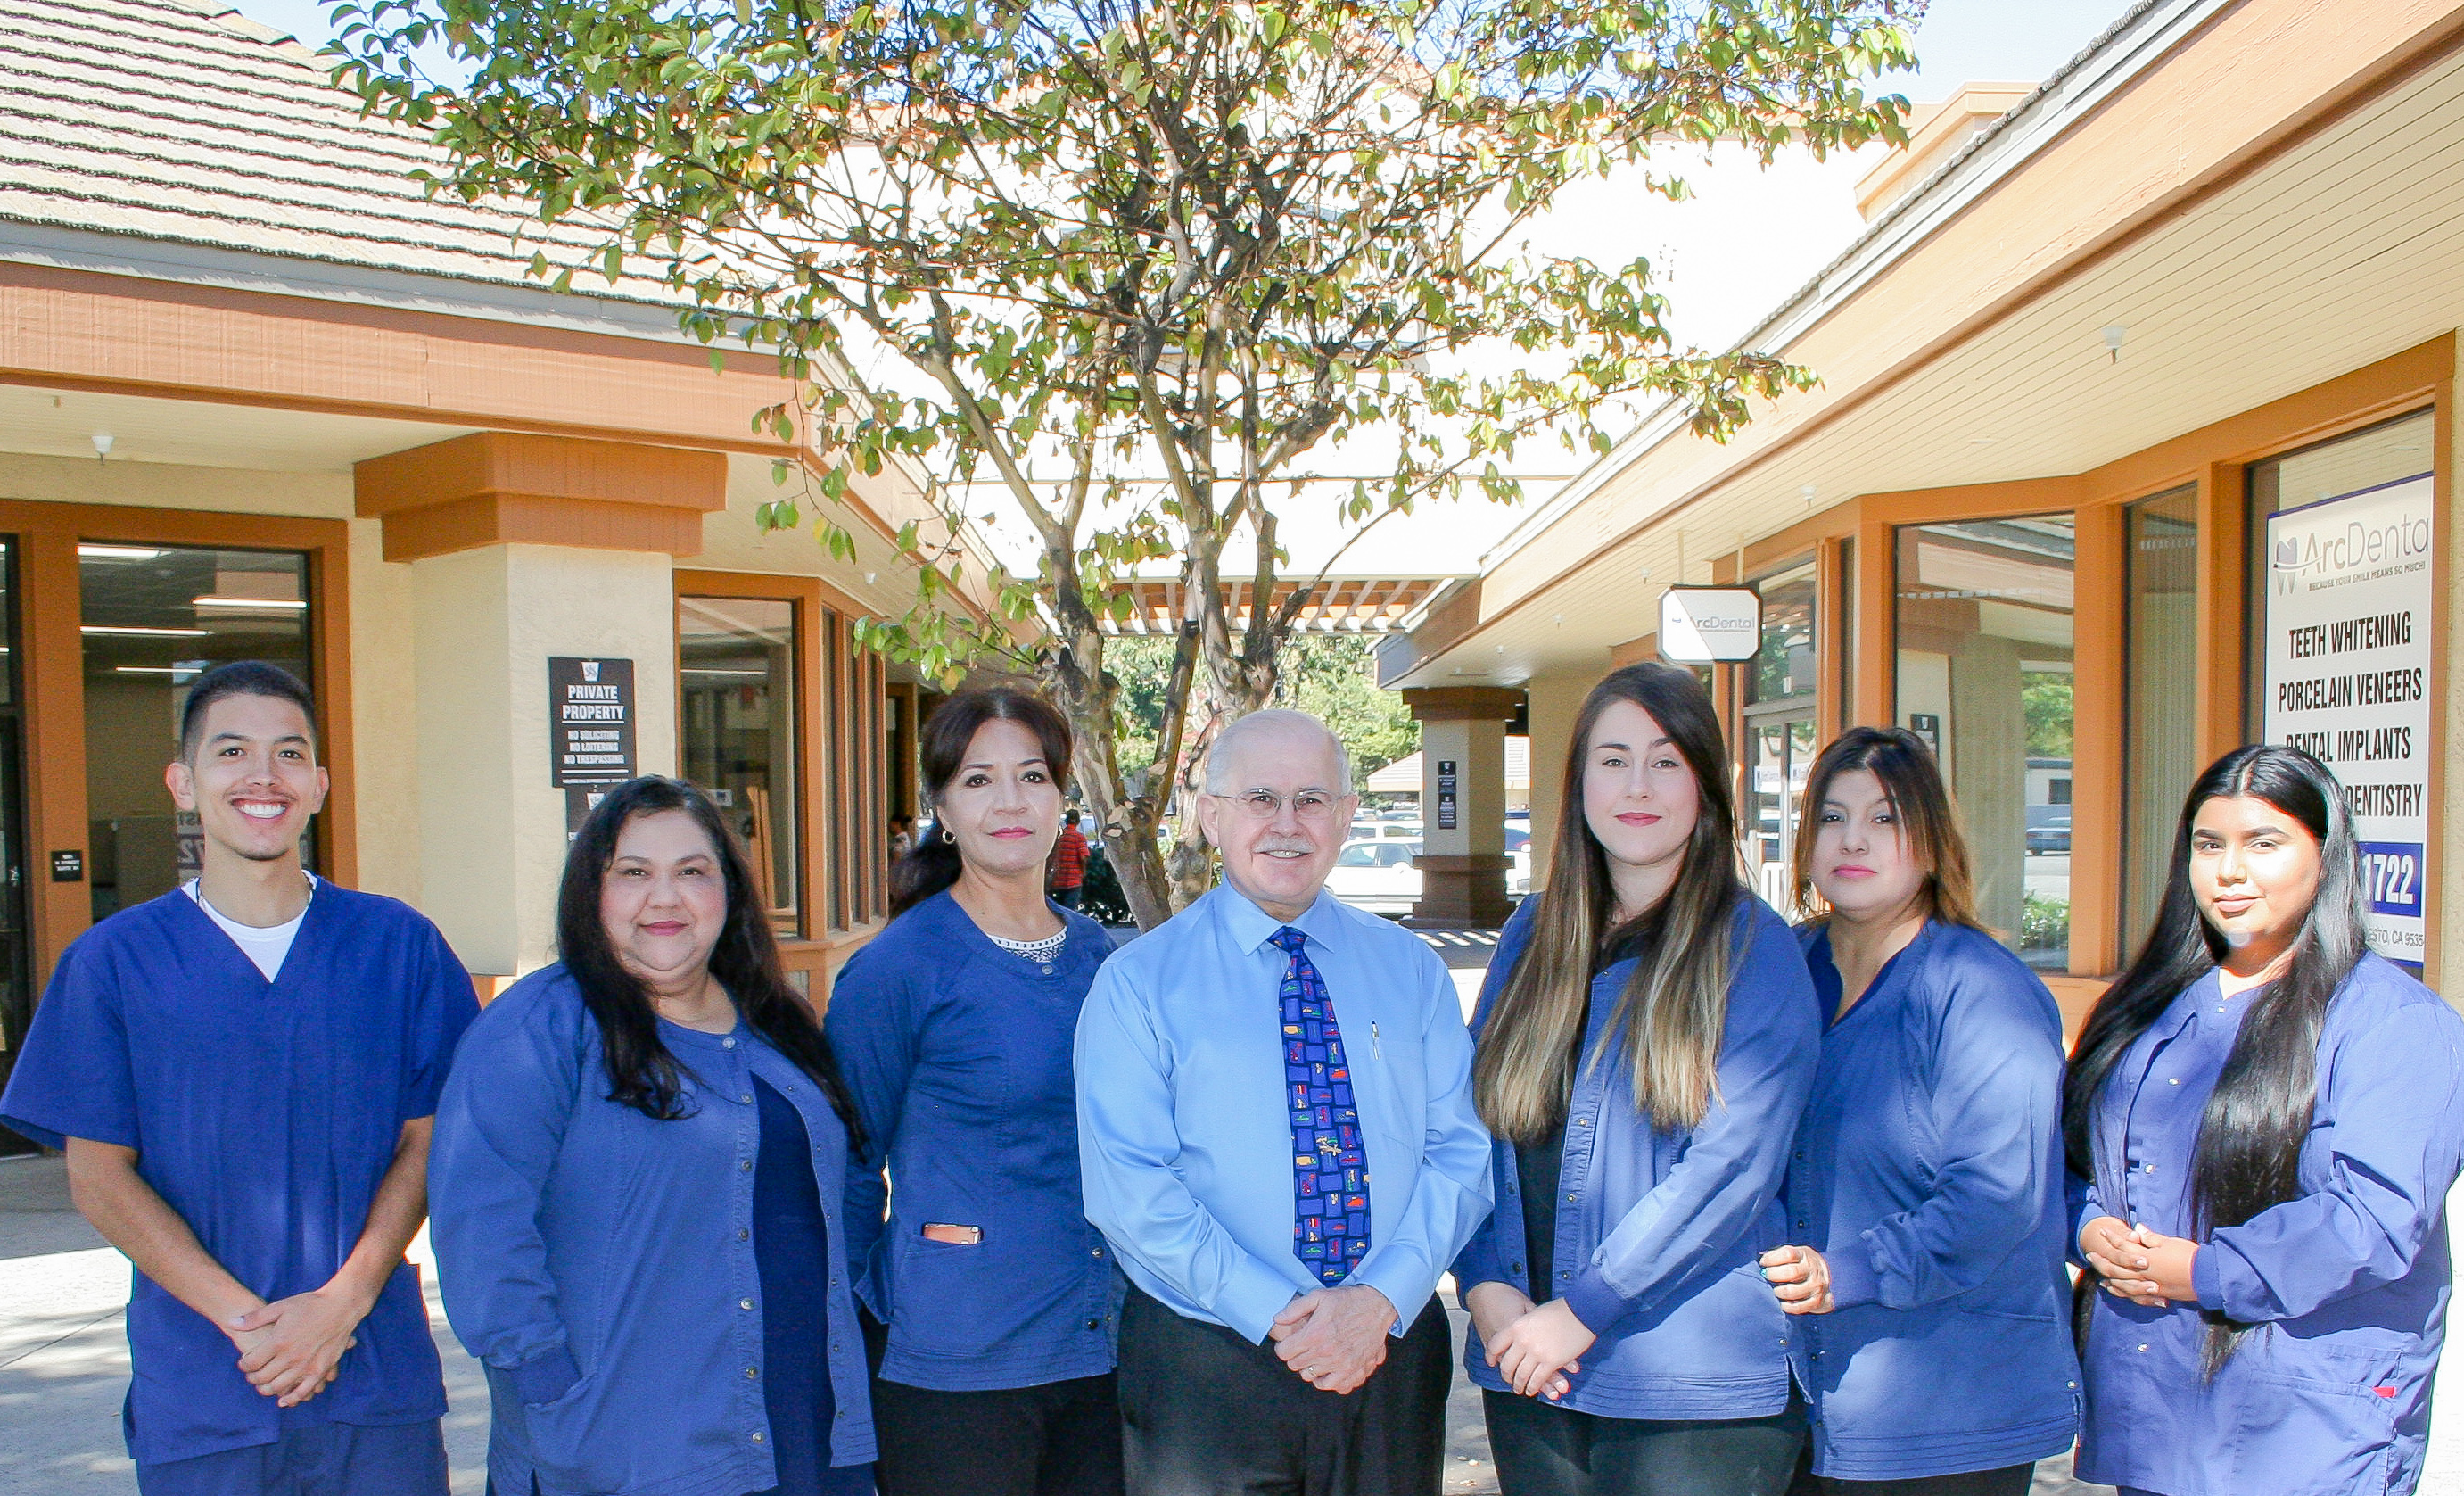 Local Dentist Modesto